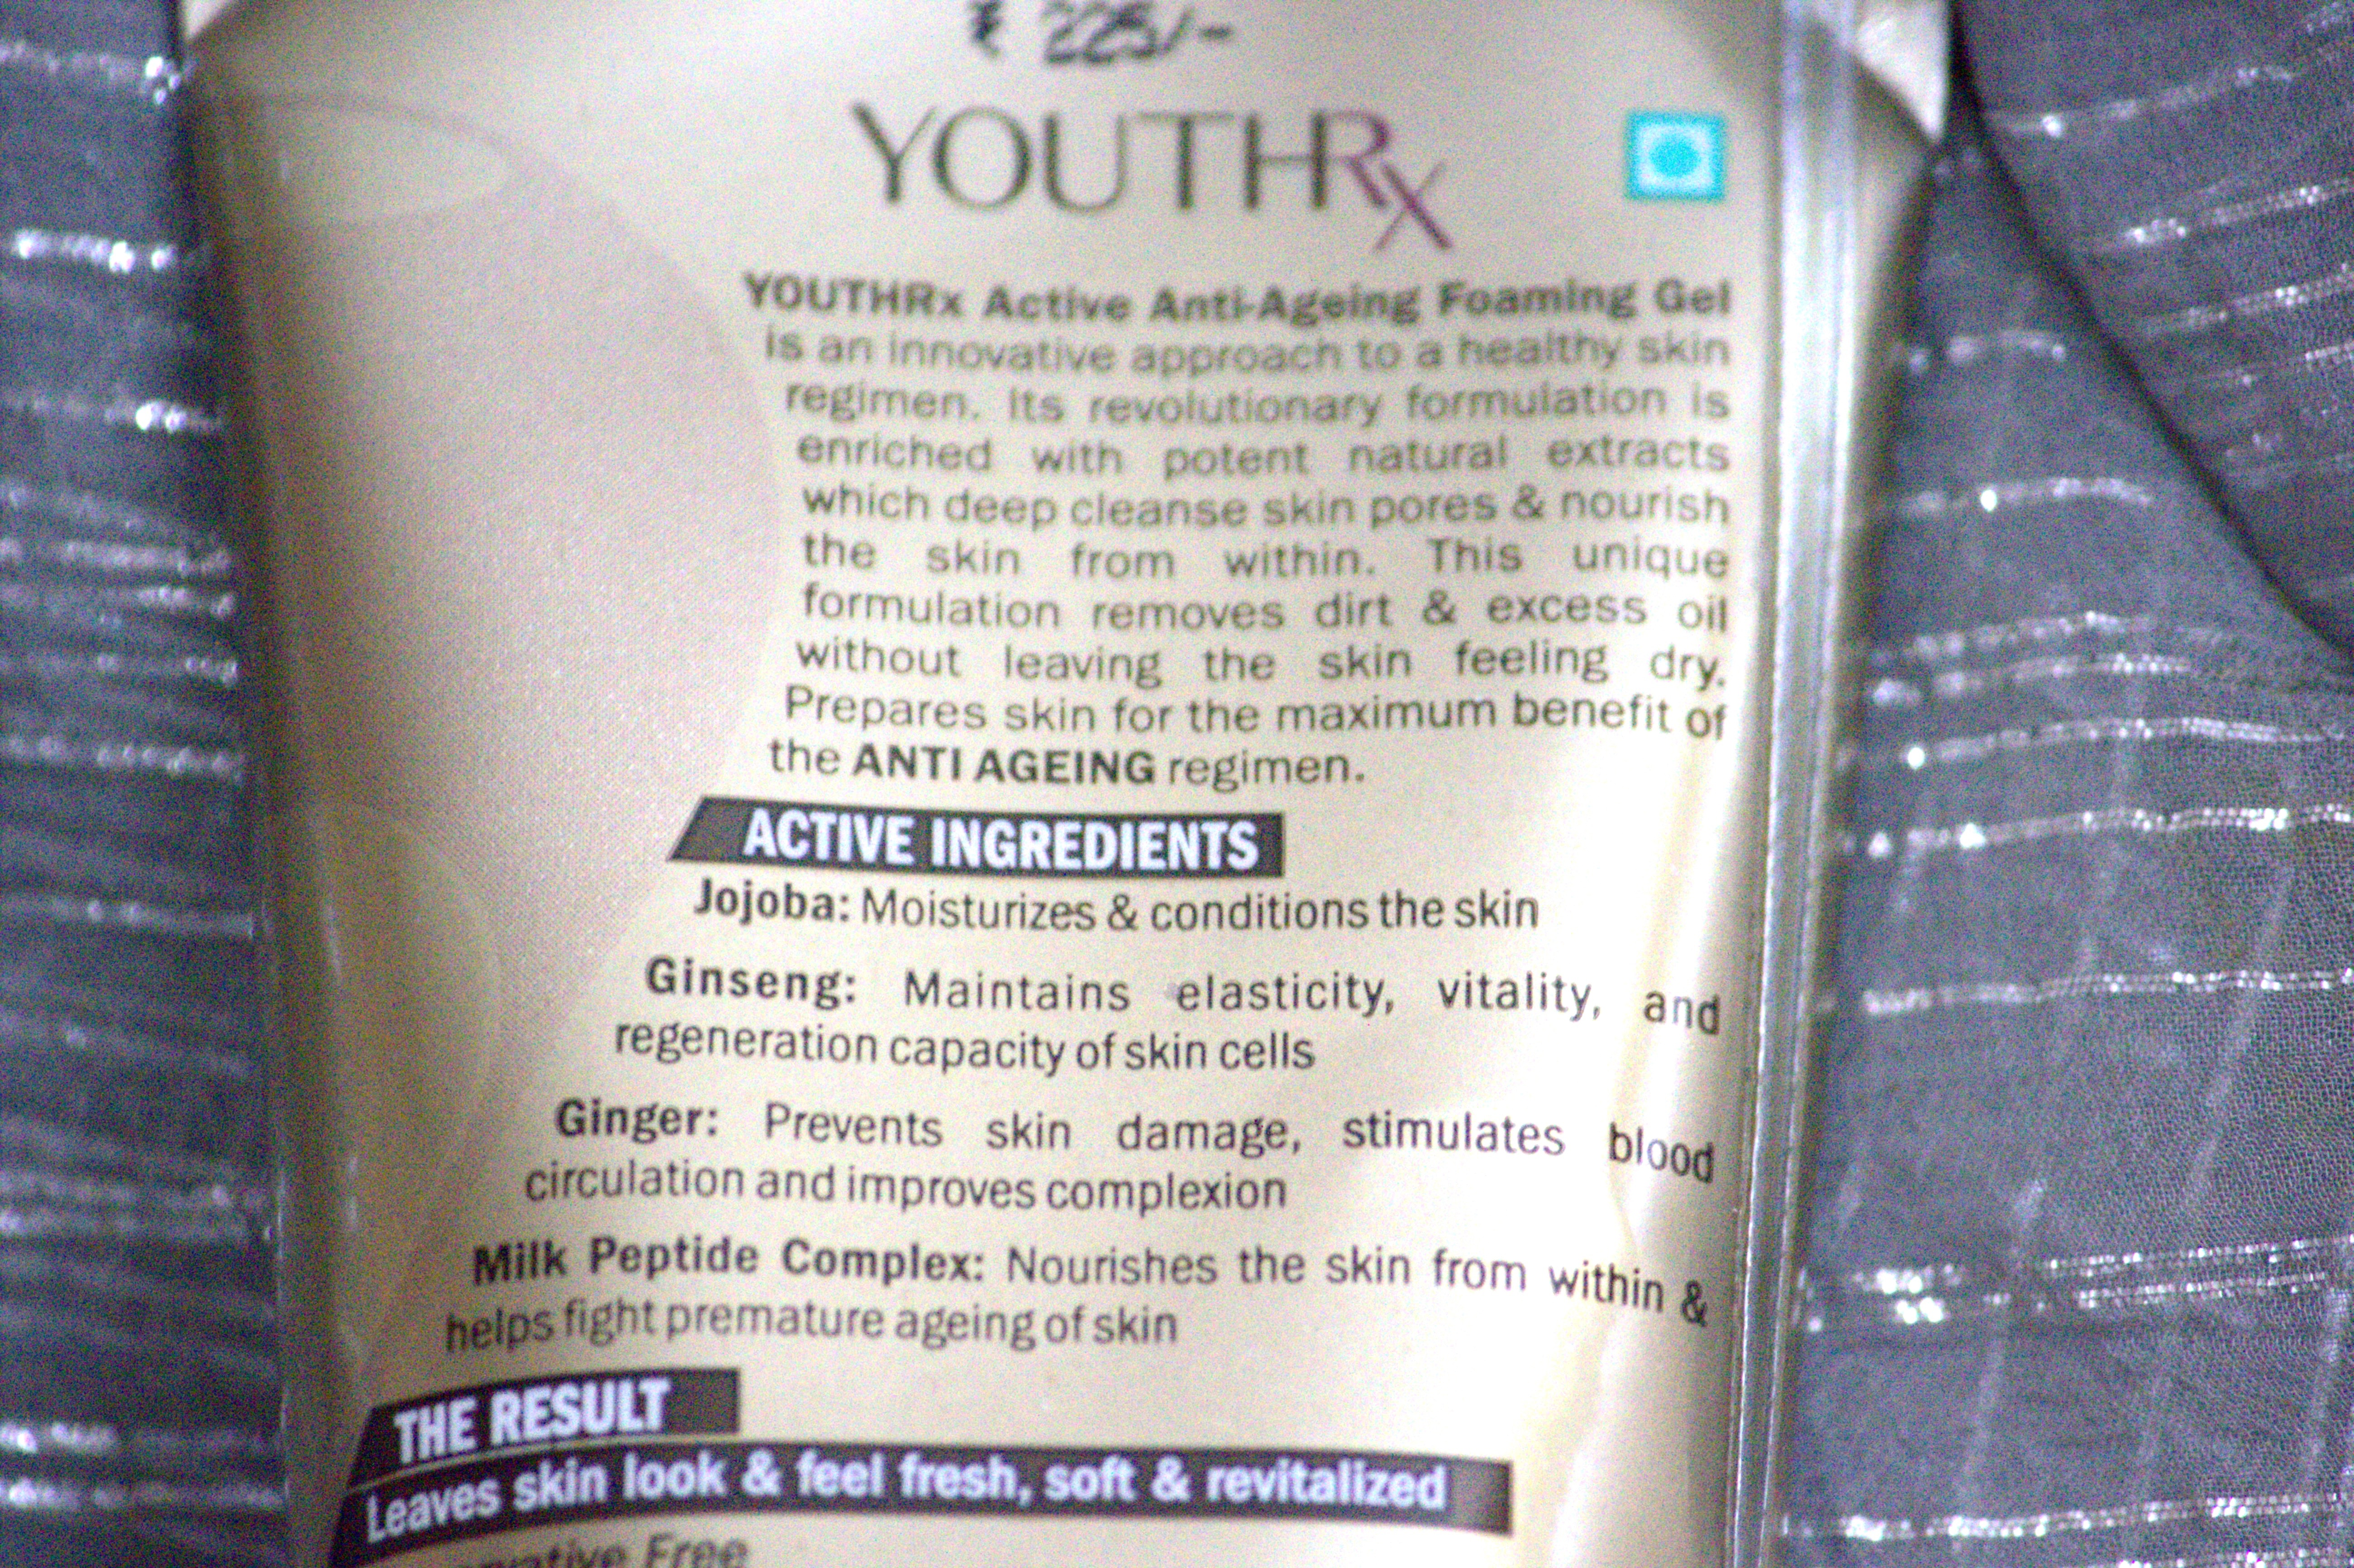 Lotus Youth Rx Cream Review